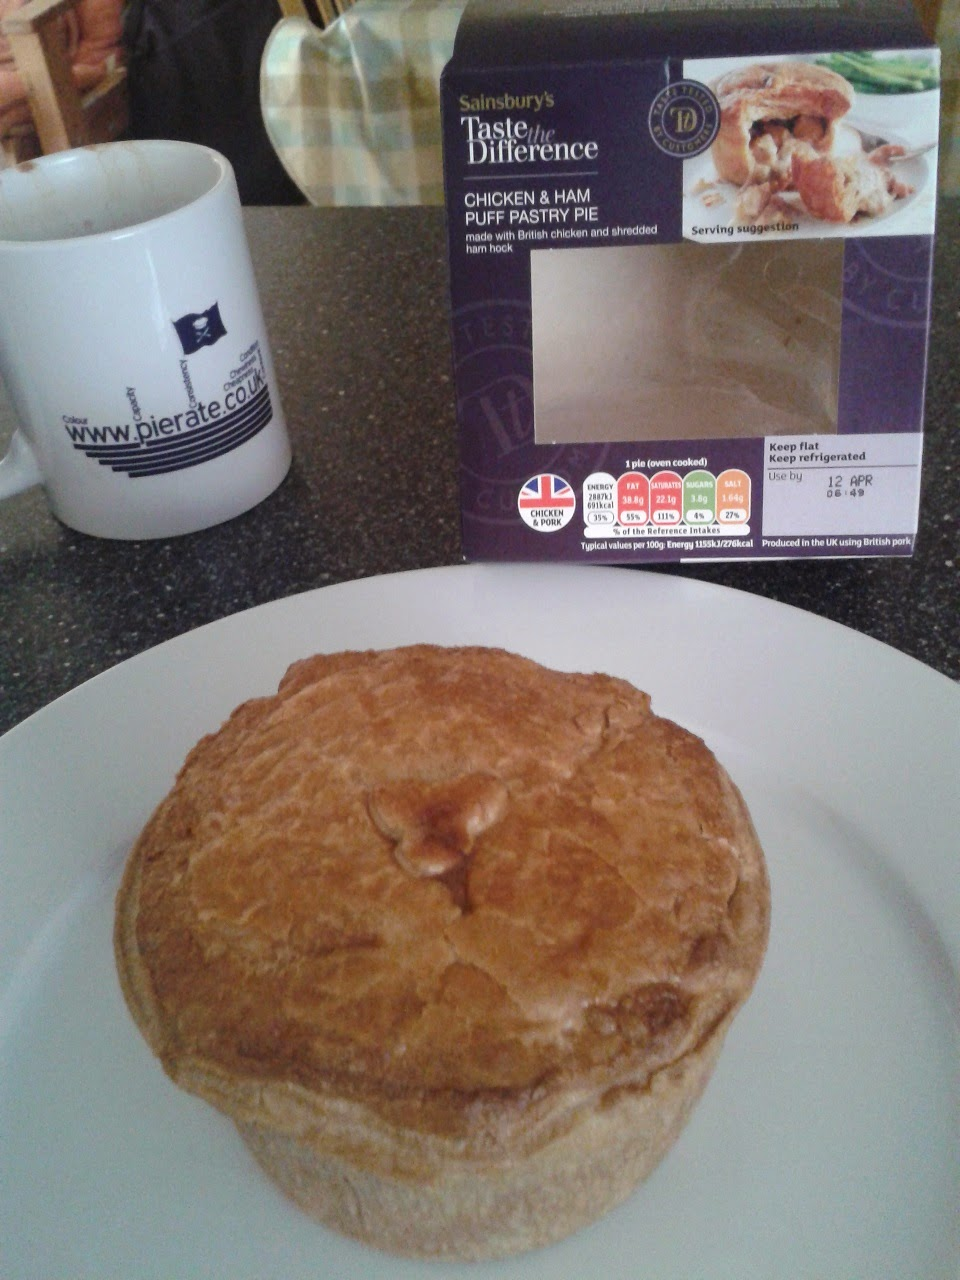 Sainsbury's Taste The Difference Chicken Pie Review